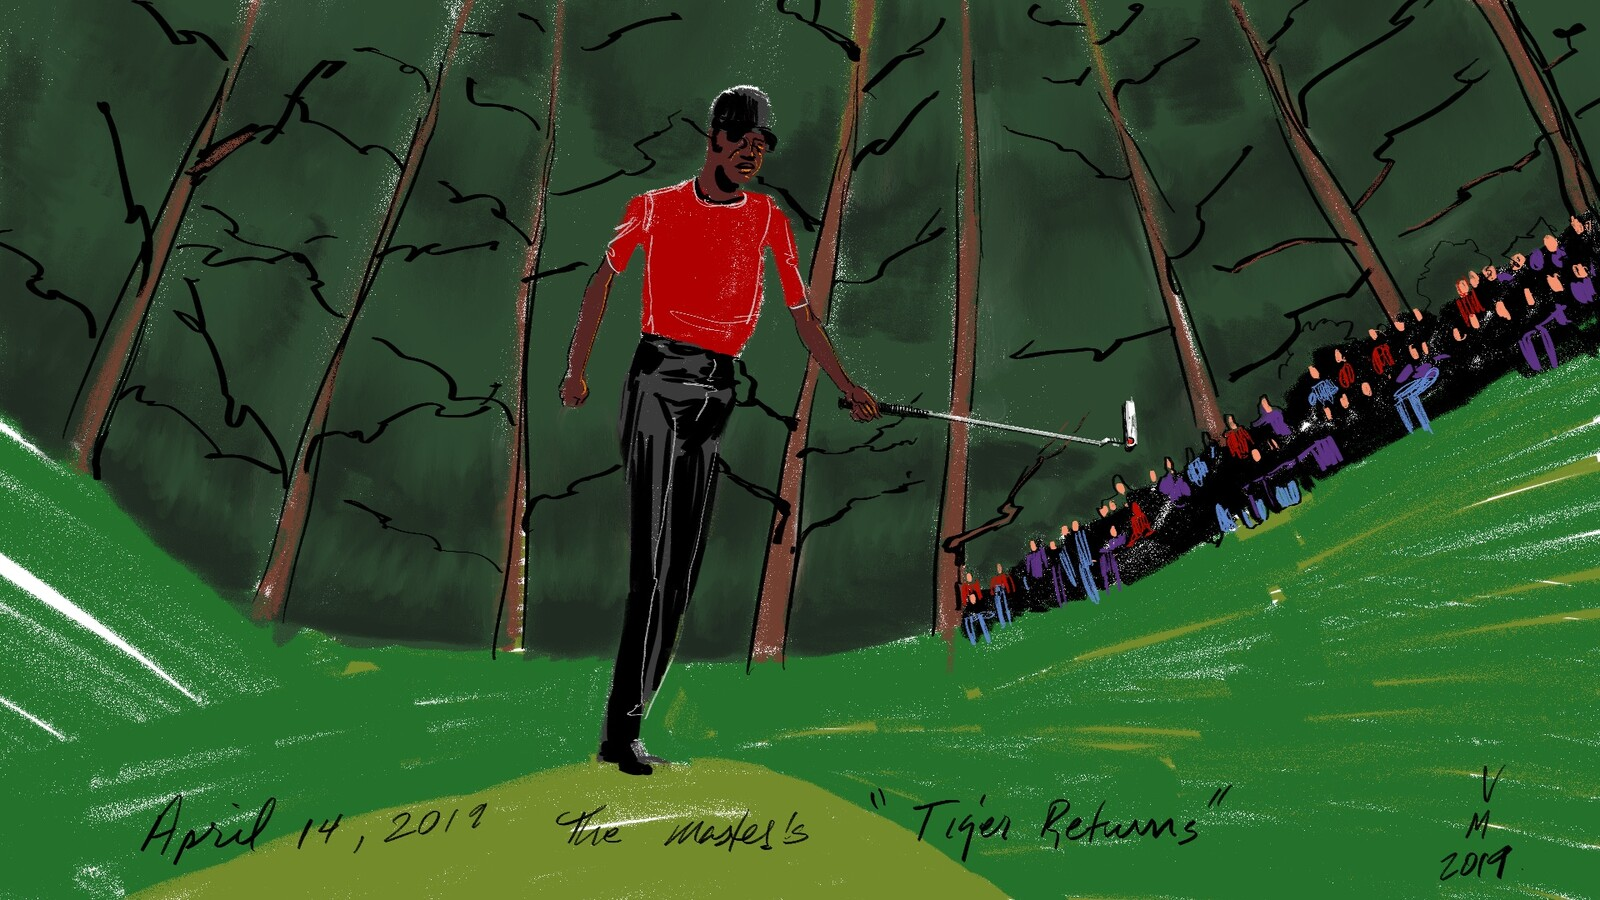 The Tiger returns. 2019 Masters